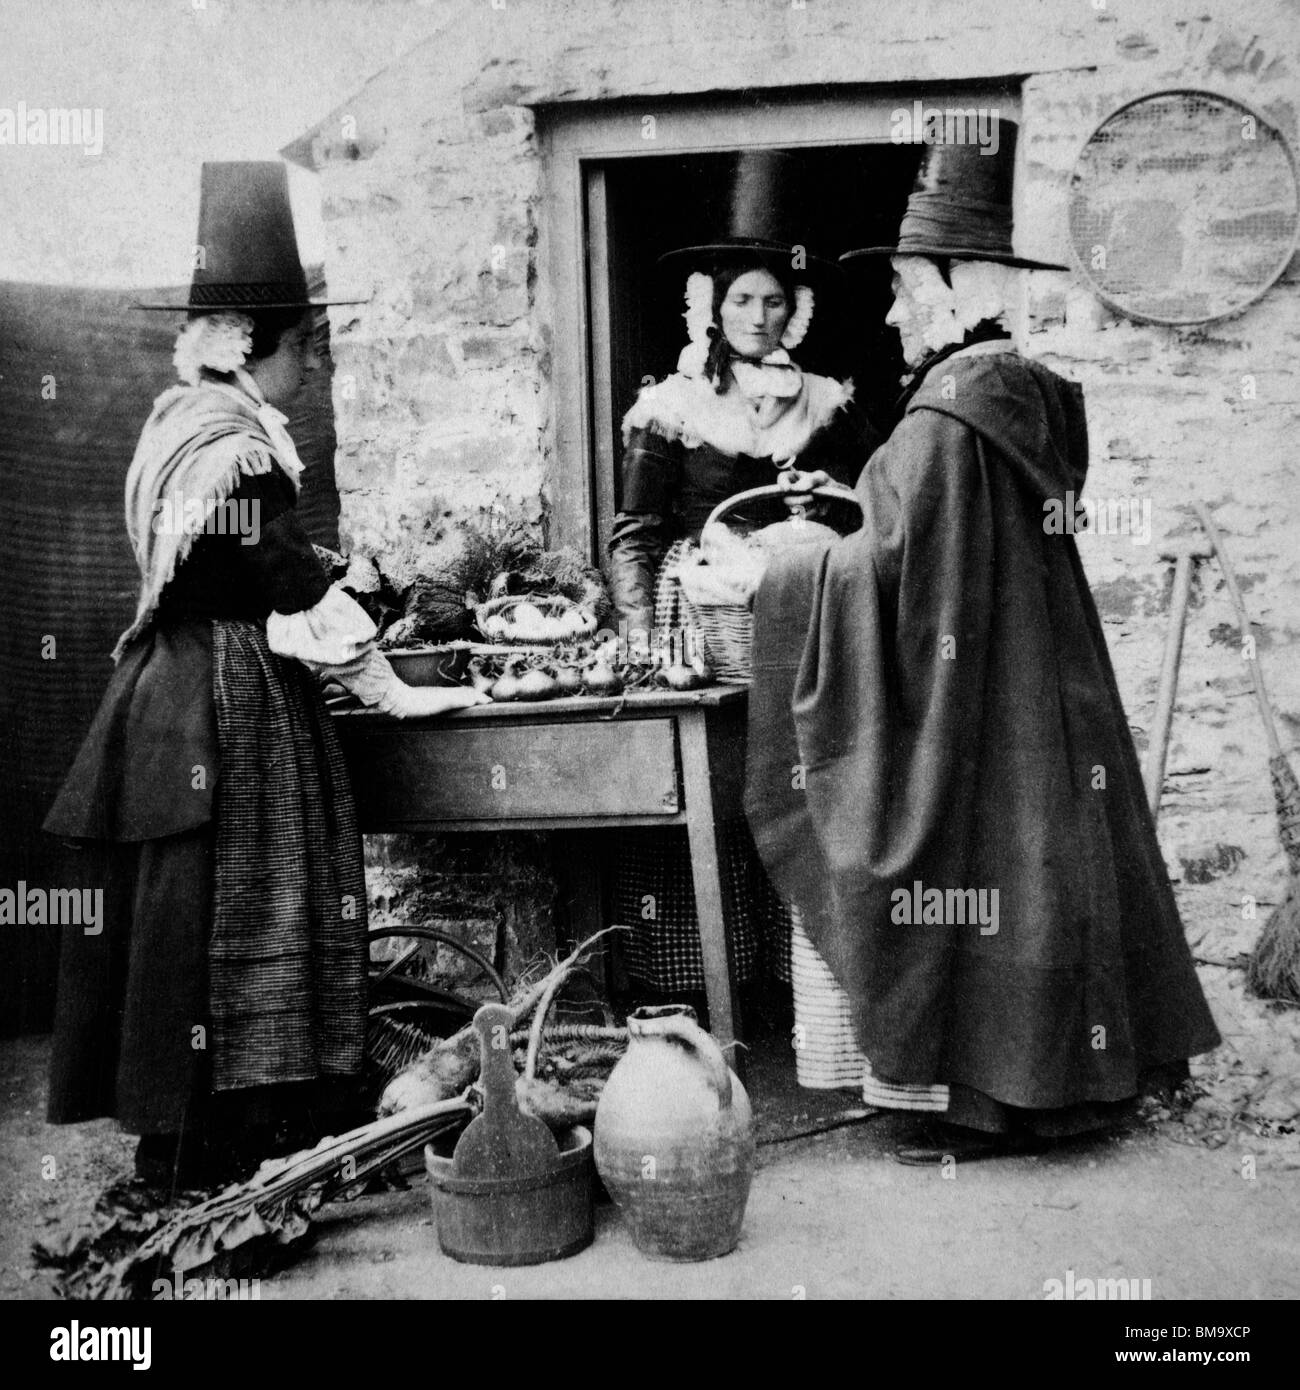 Wales, Welsh women wearing traditional national costume in mid Victorian market scene - Stock Image